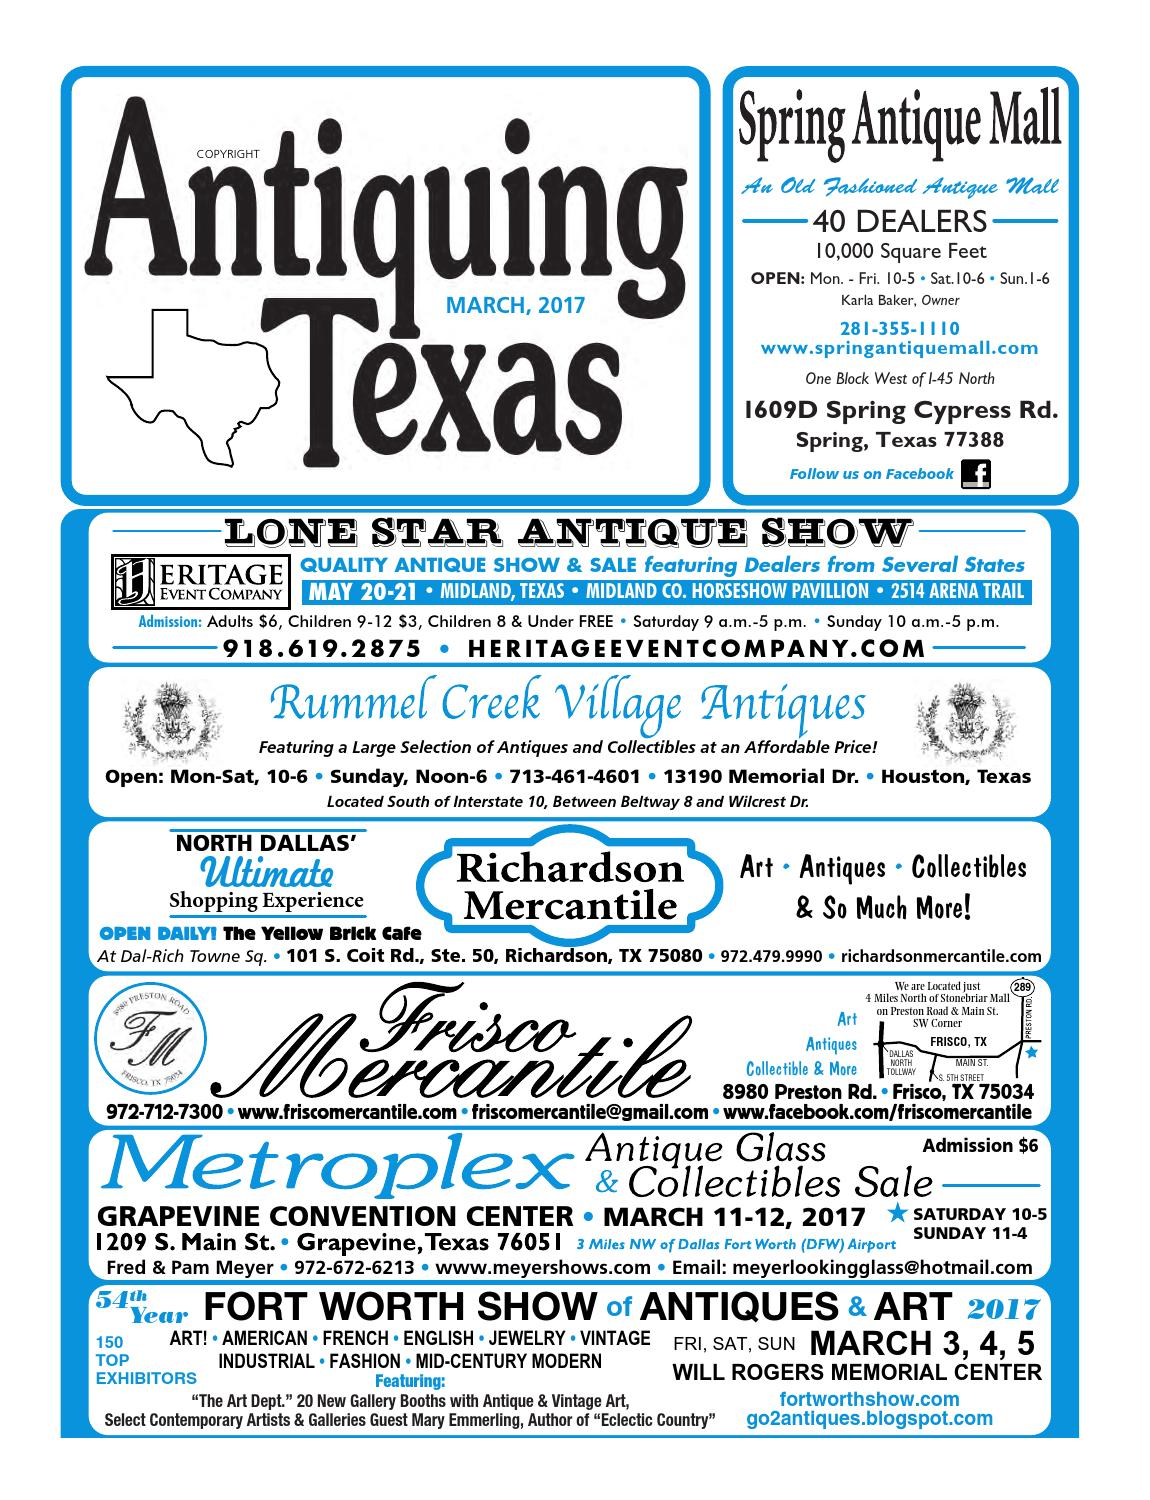 Ant tx upload 3 17 by Antiquing Texas - issuu